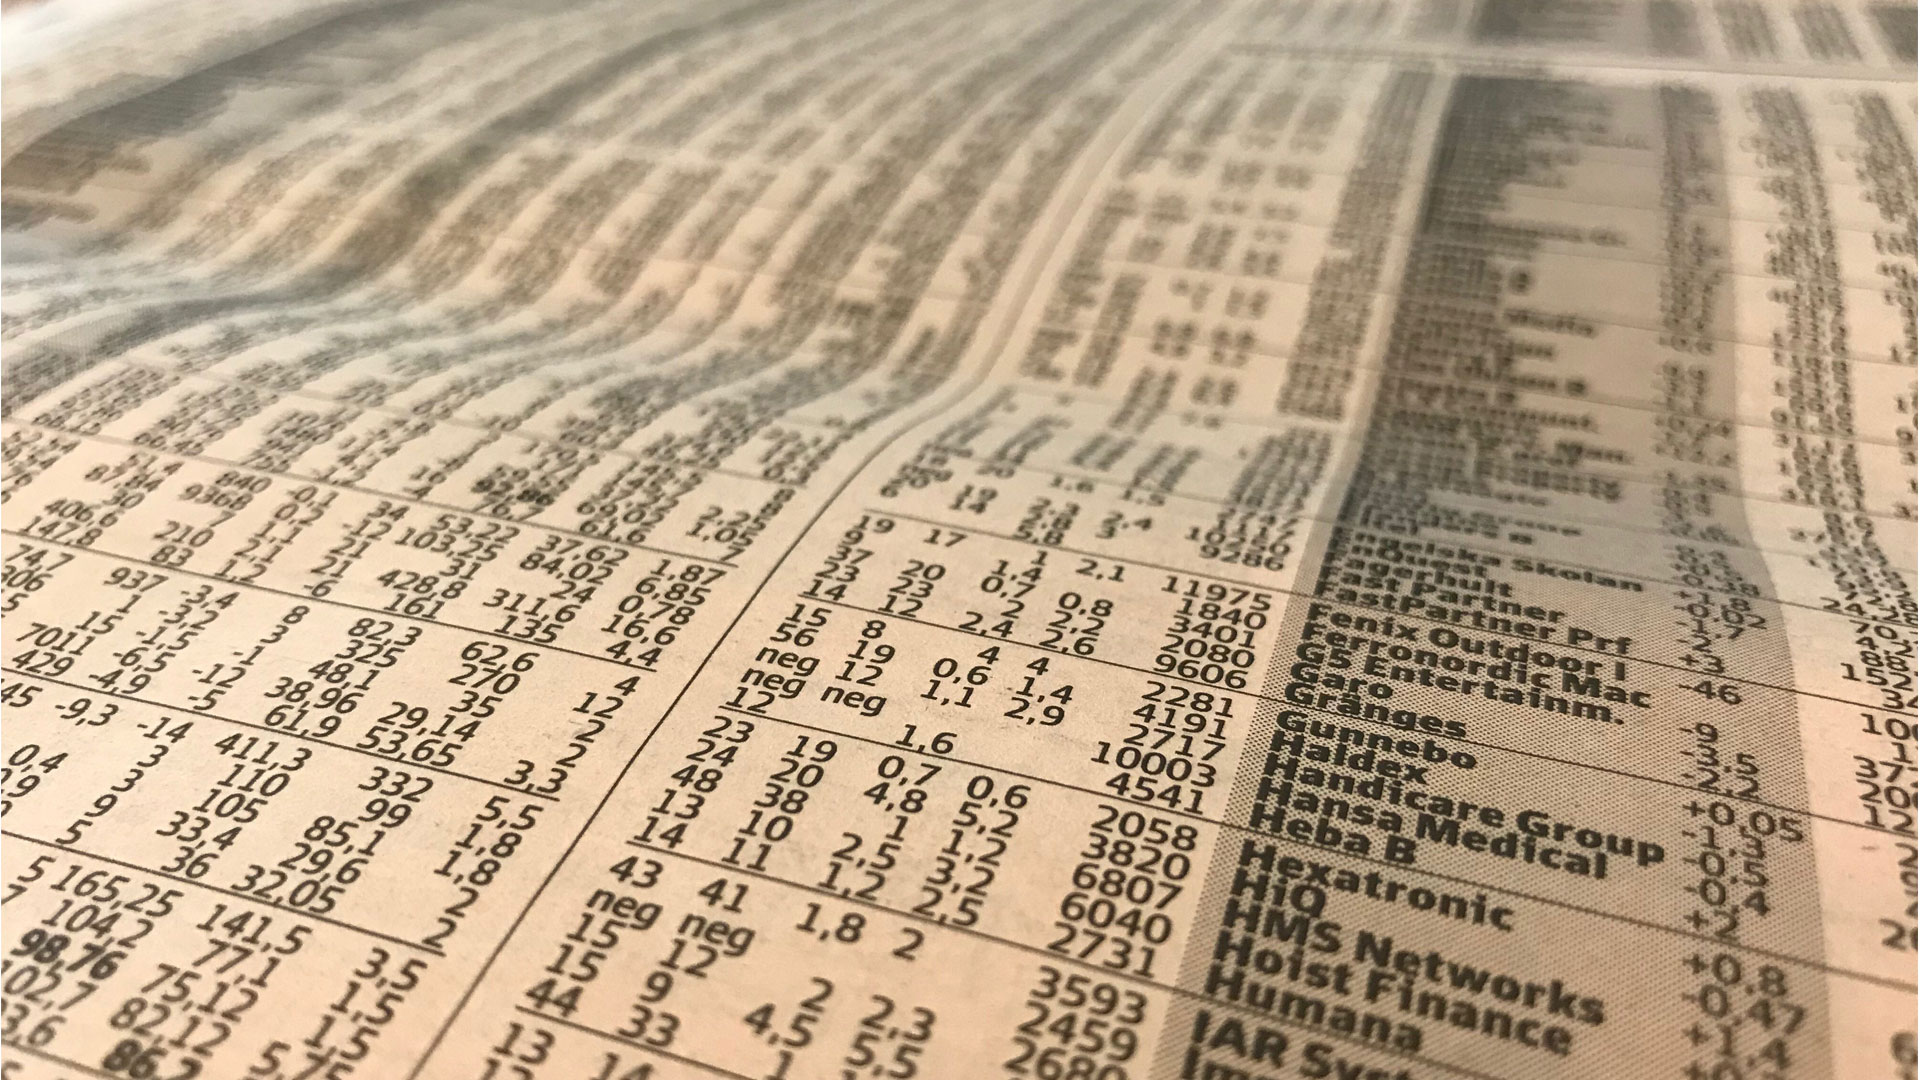 The stock market pages in a newspaper